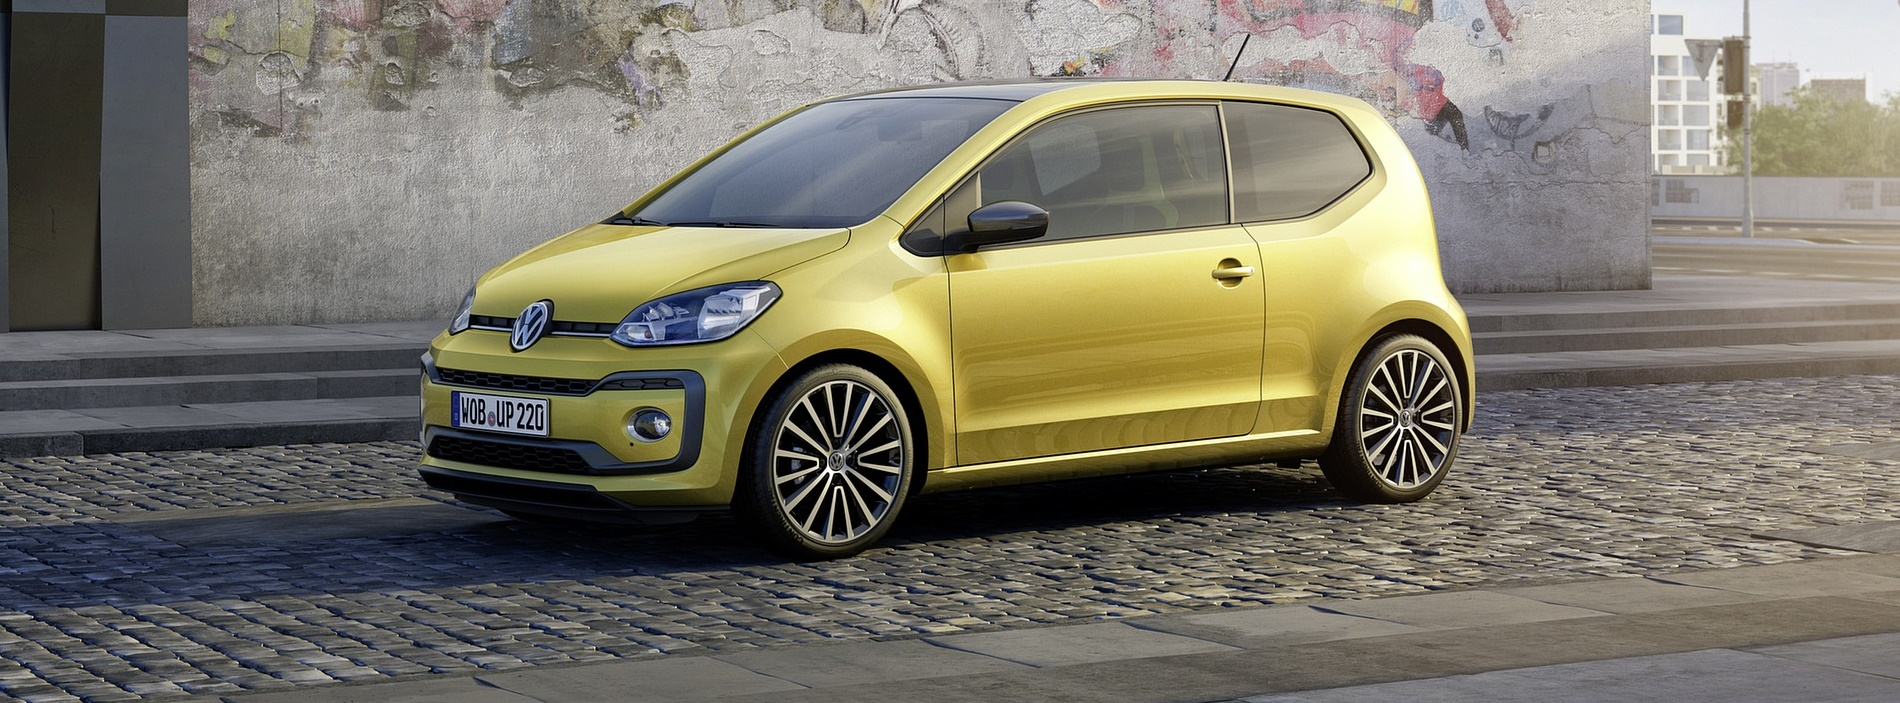 VOLKSWAGEN UP 1.0 55kw Move Up! Asg